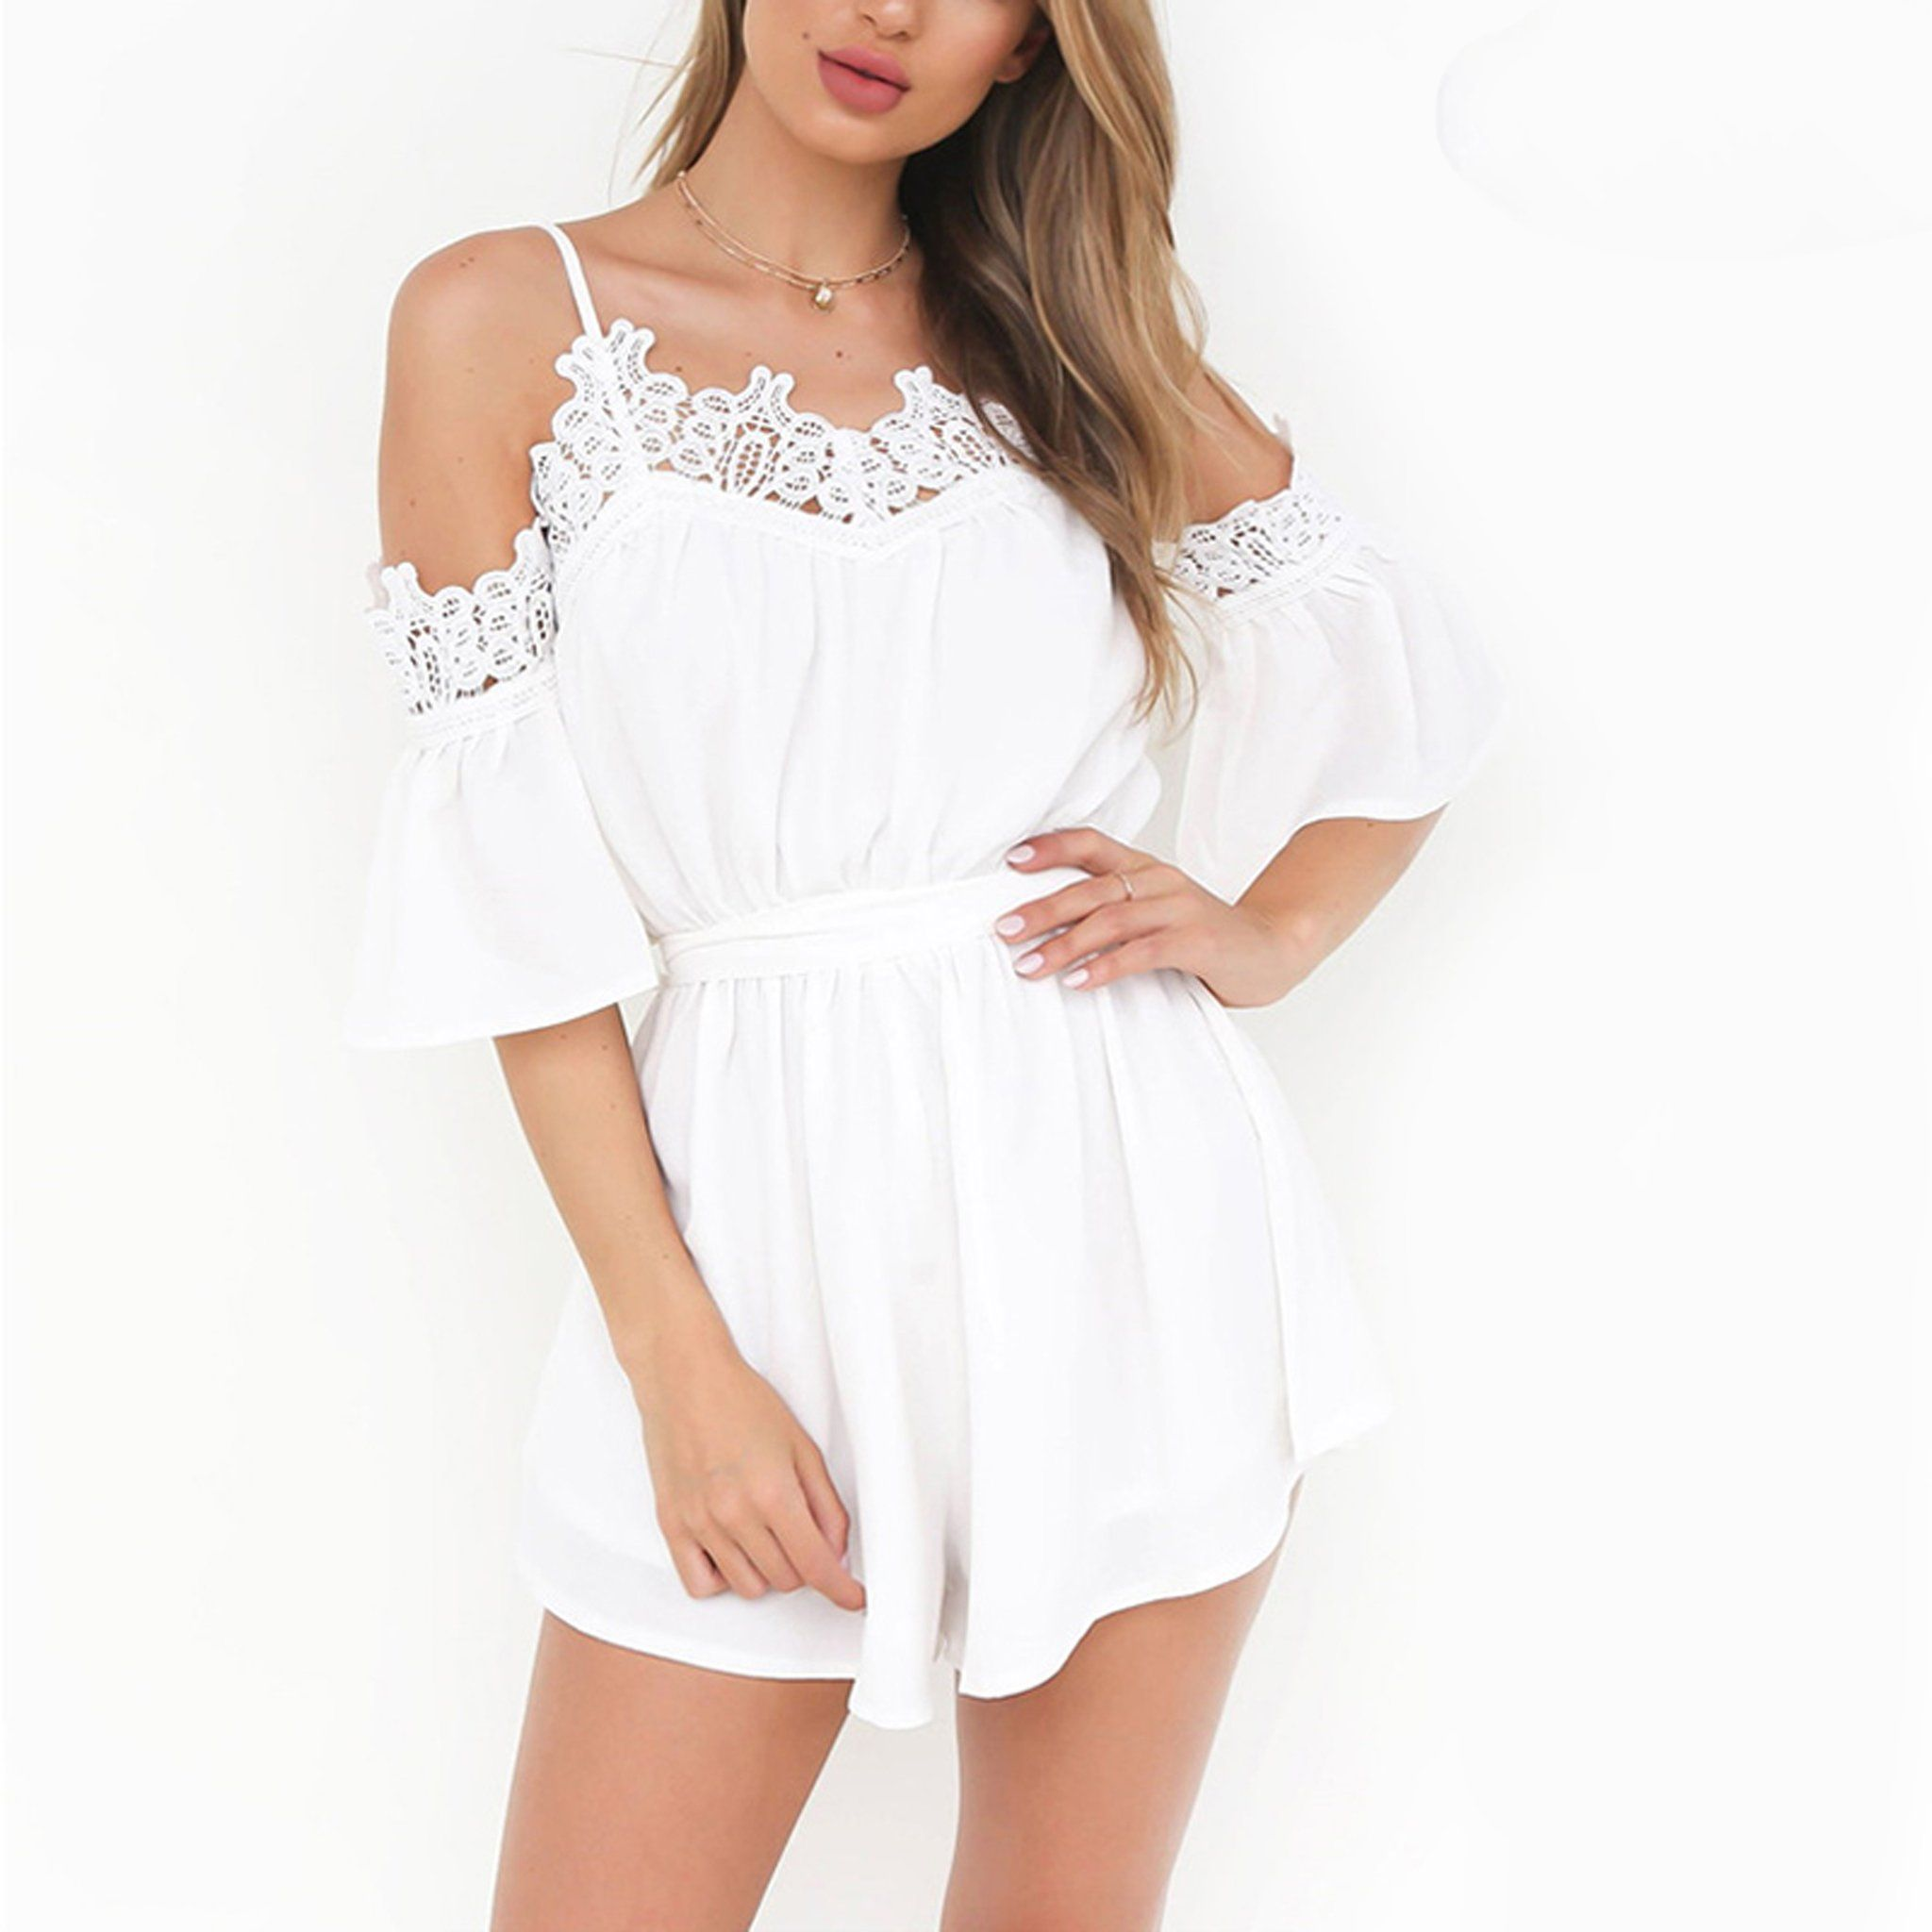 69d69c1f6394 Classy Summer Outfit Ideas for Women - Cute Pretty Romper Playsuit White or  Pink Crotchet Lace - www.GlamantiBeauty.com  outfits  dresses